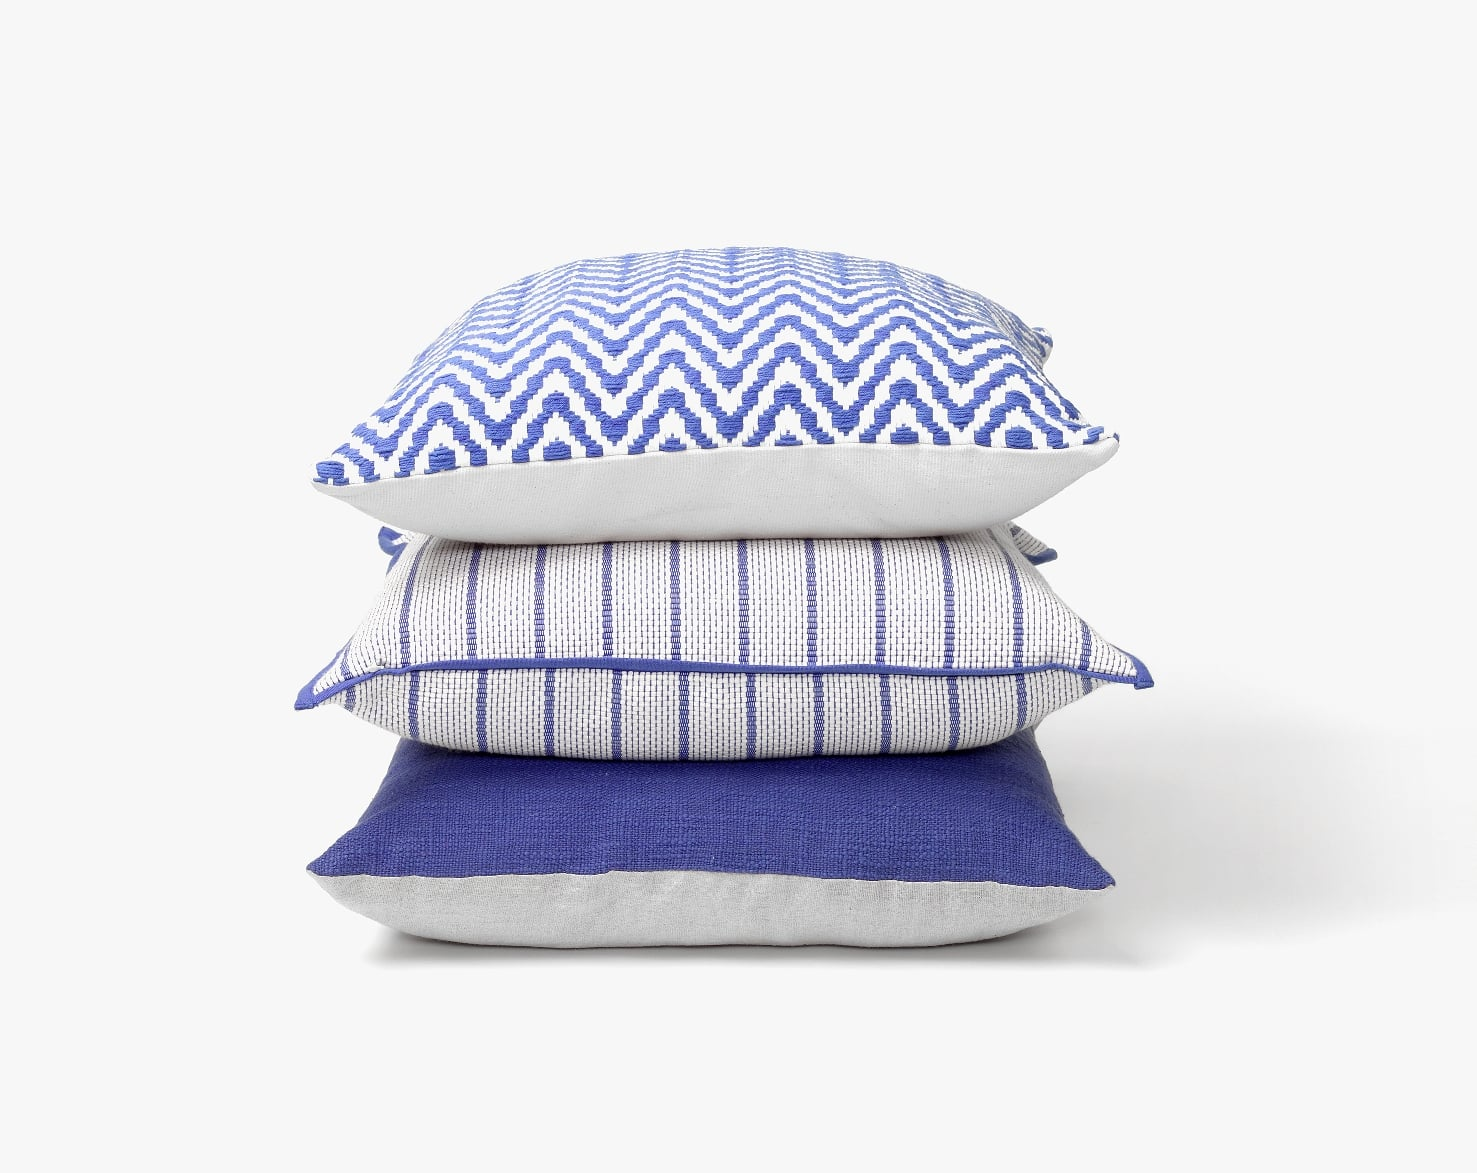 Cushions, from $39.95